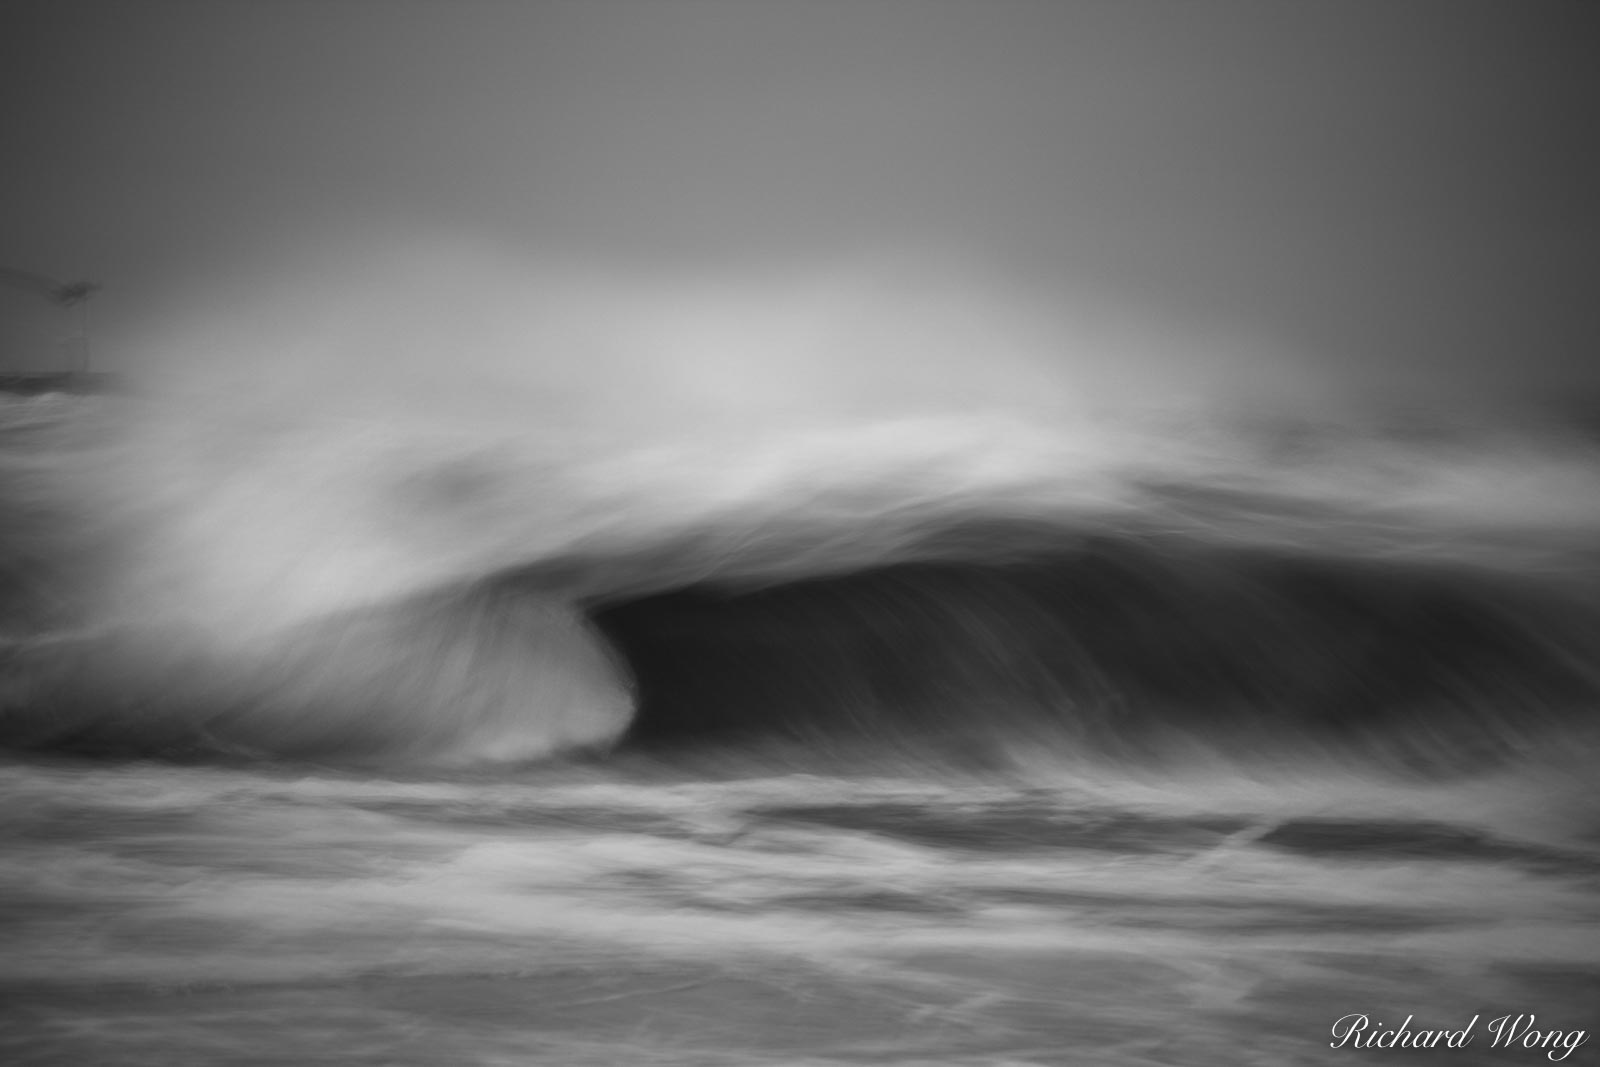 Pacific Ocean, b w, balboa peninsula, big waves, black and white photography, danger, dangerous, newport beach, orange county, outdoors, outside, seascape, set, sets, southern california, surge, swell, photo